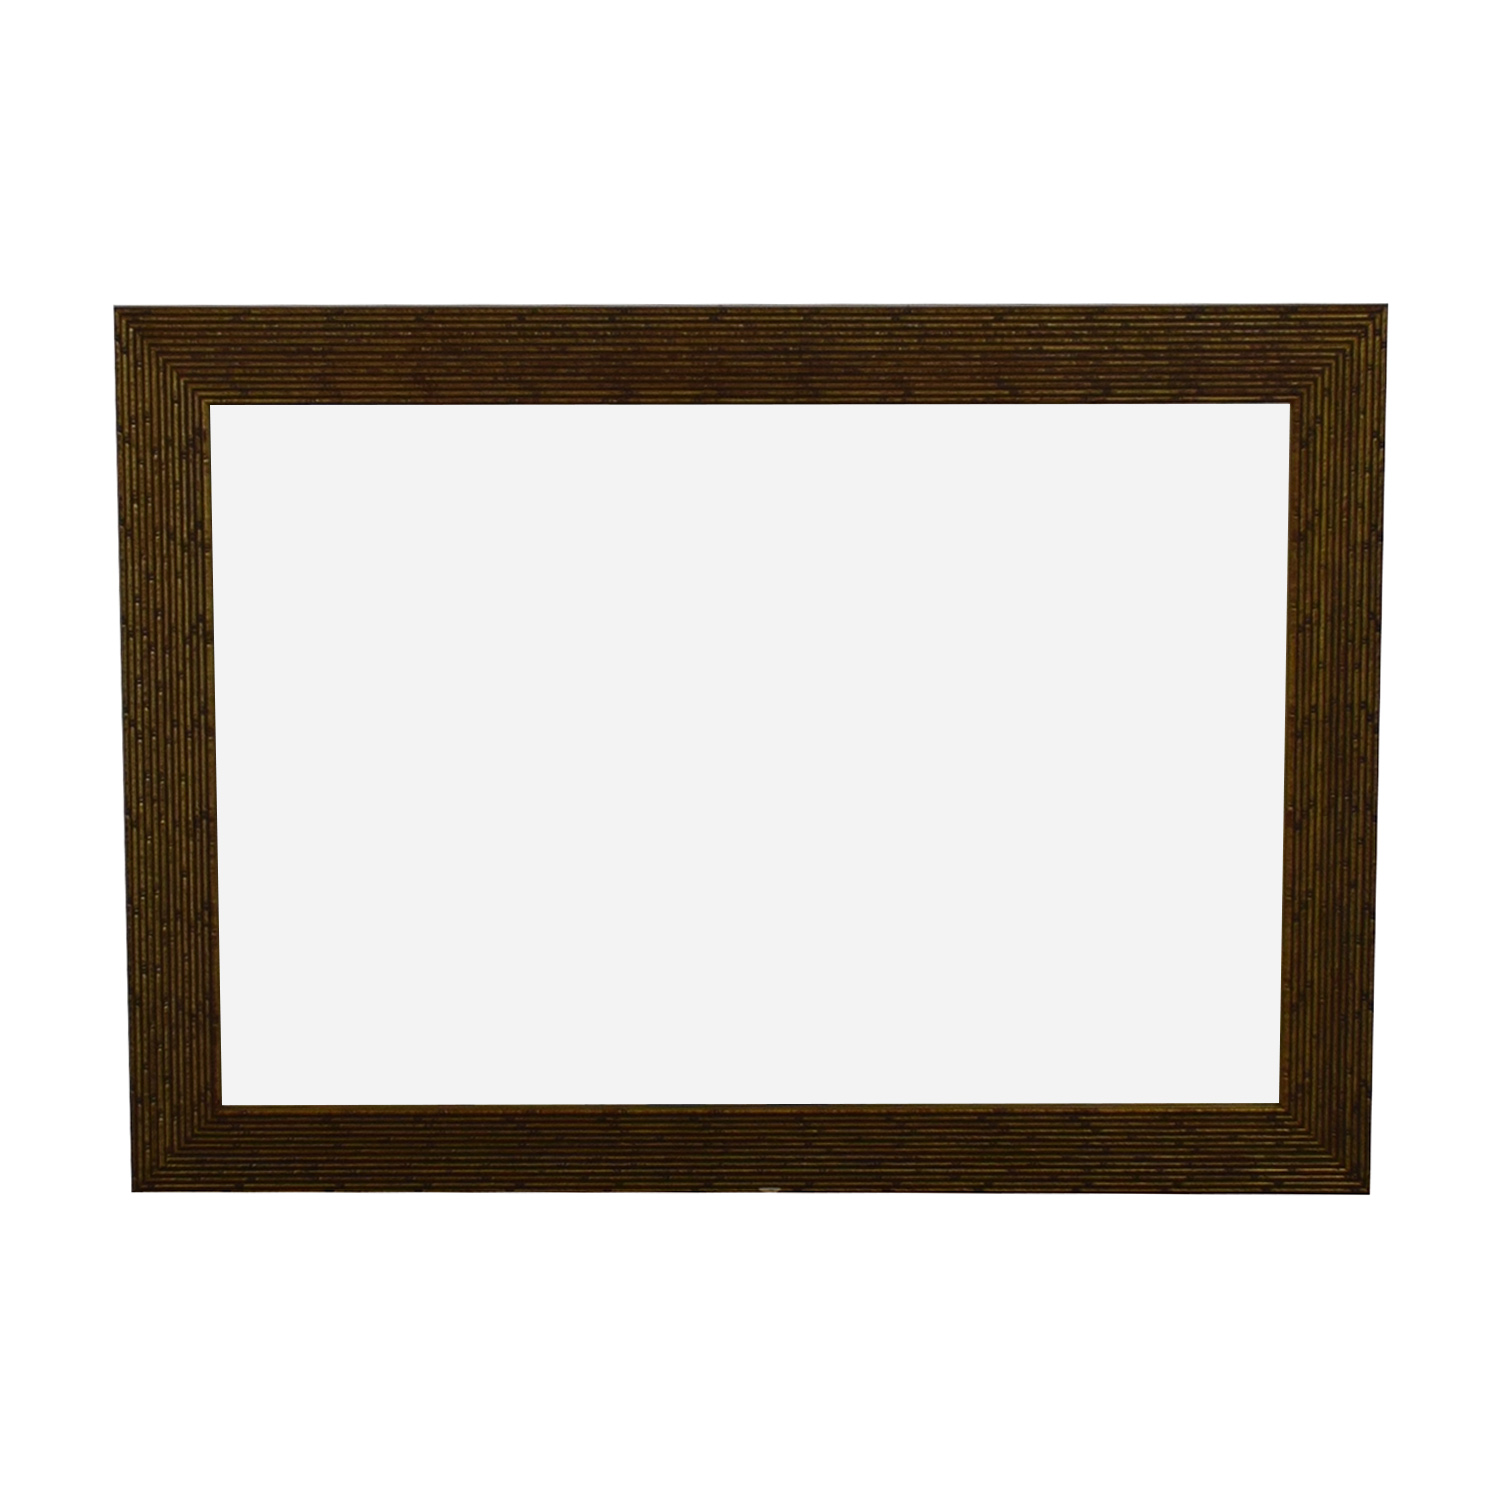 LaMarche Gold Mirror gray